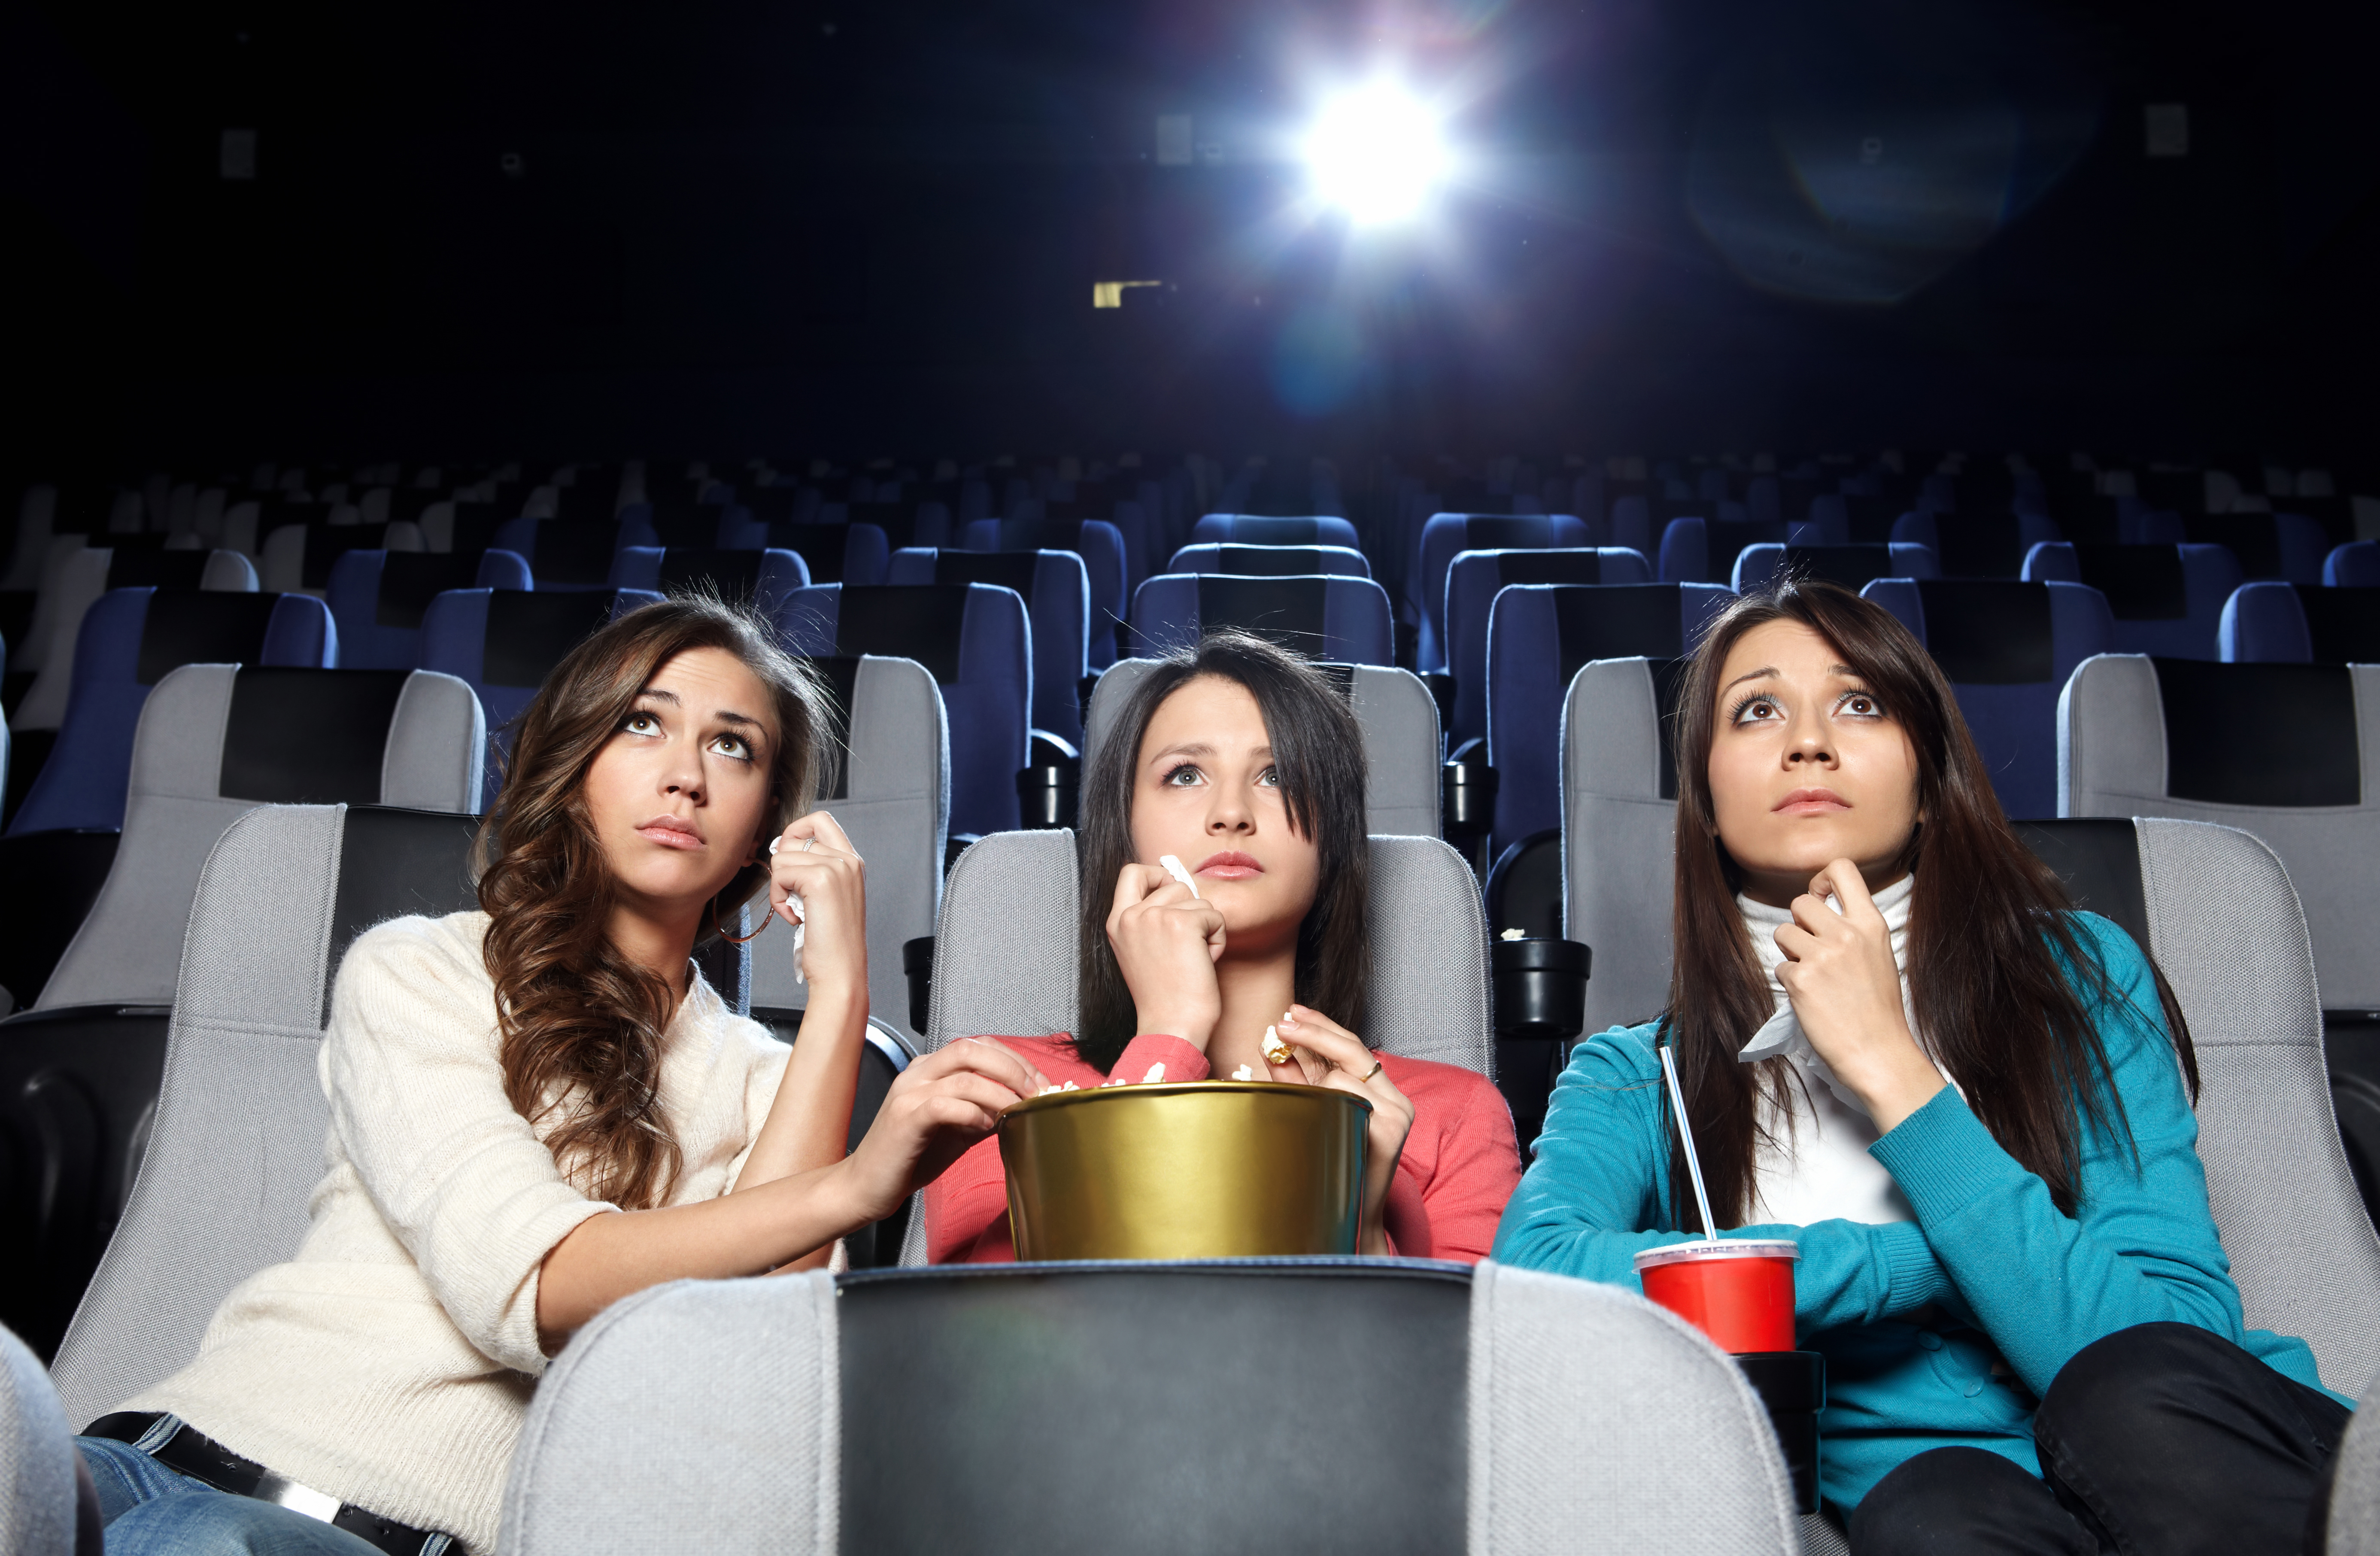 Sad Movies Fuel Obesity And Emotional Eating: Melancholy ...